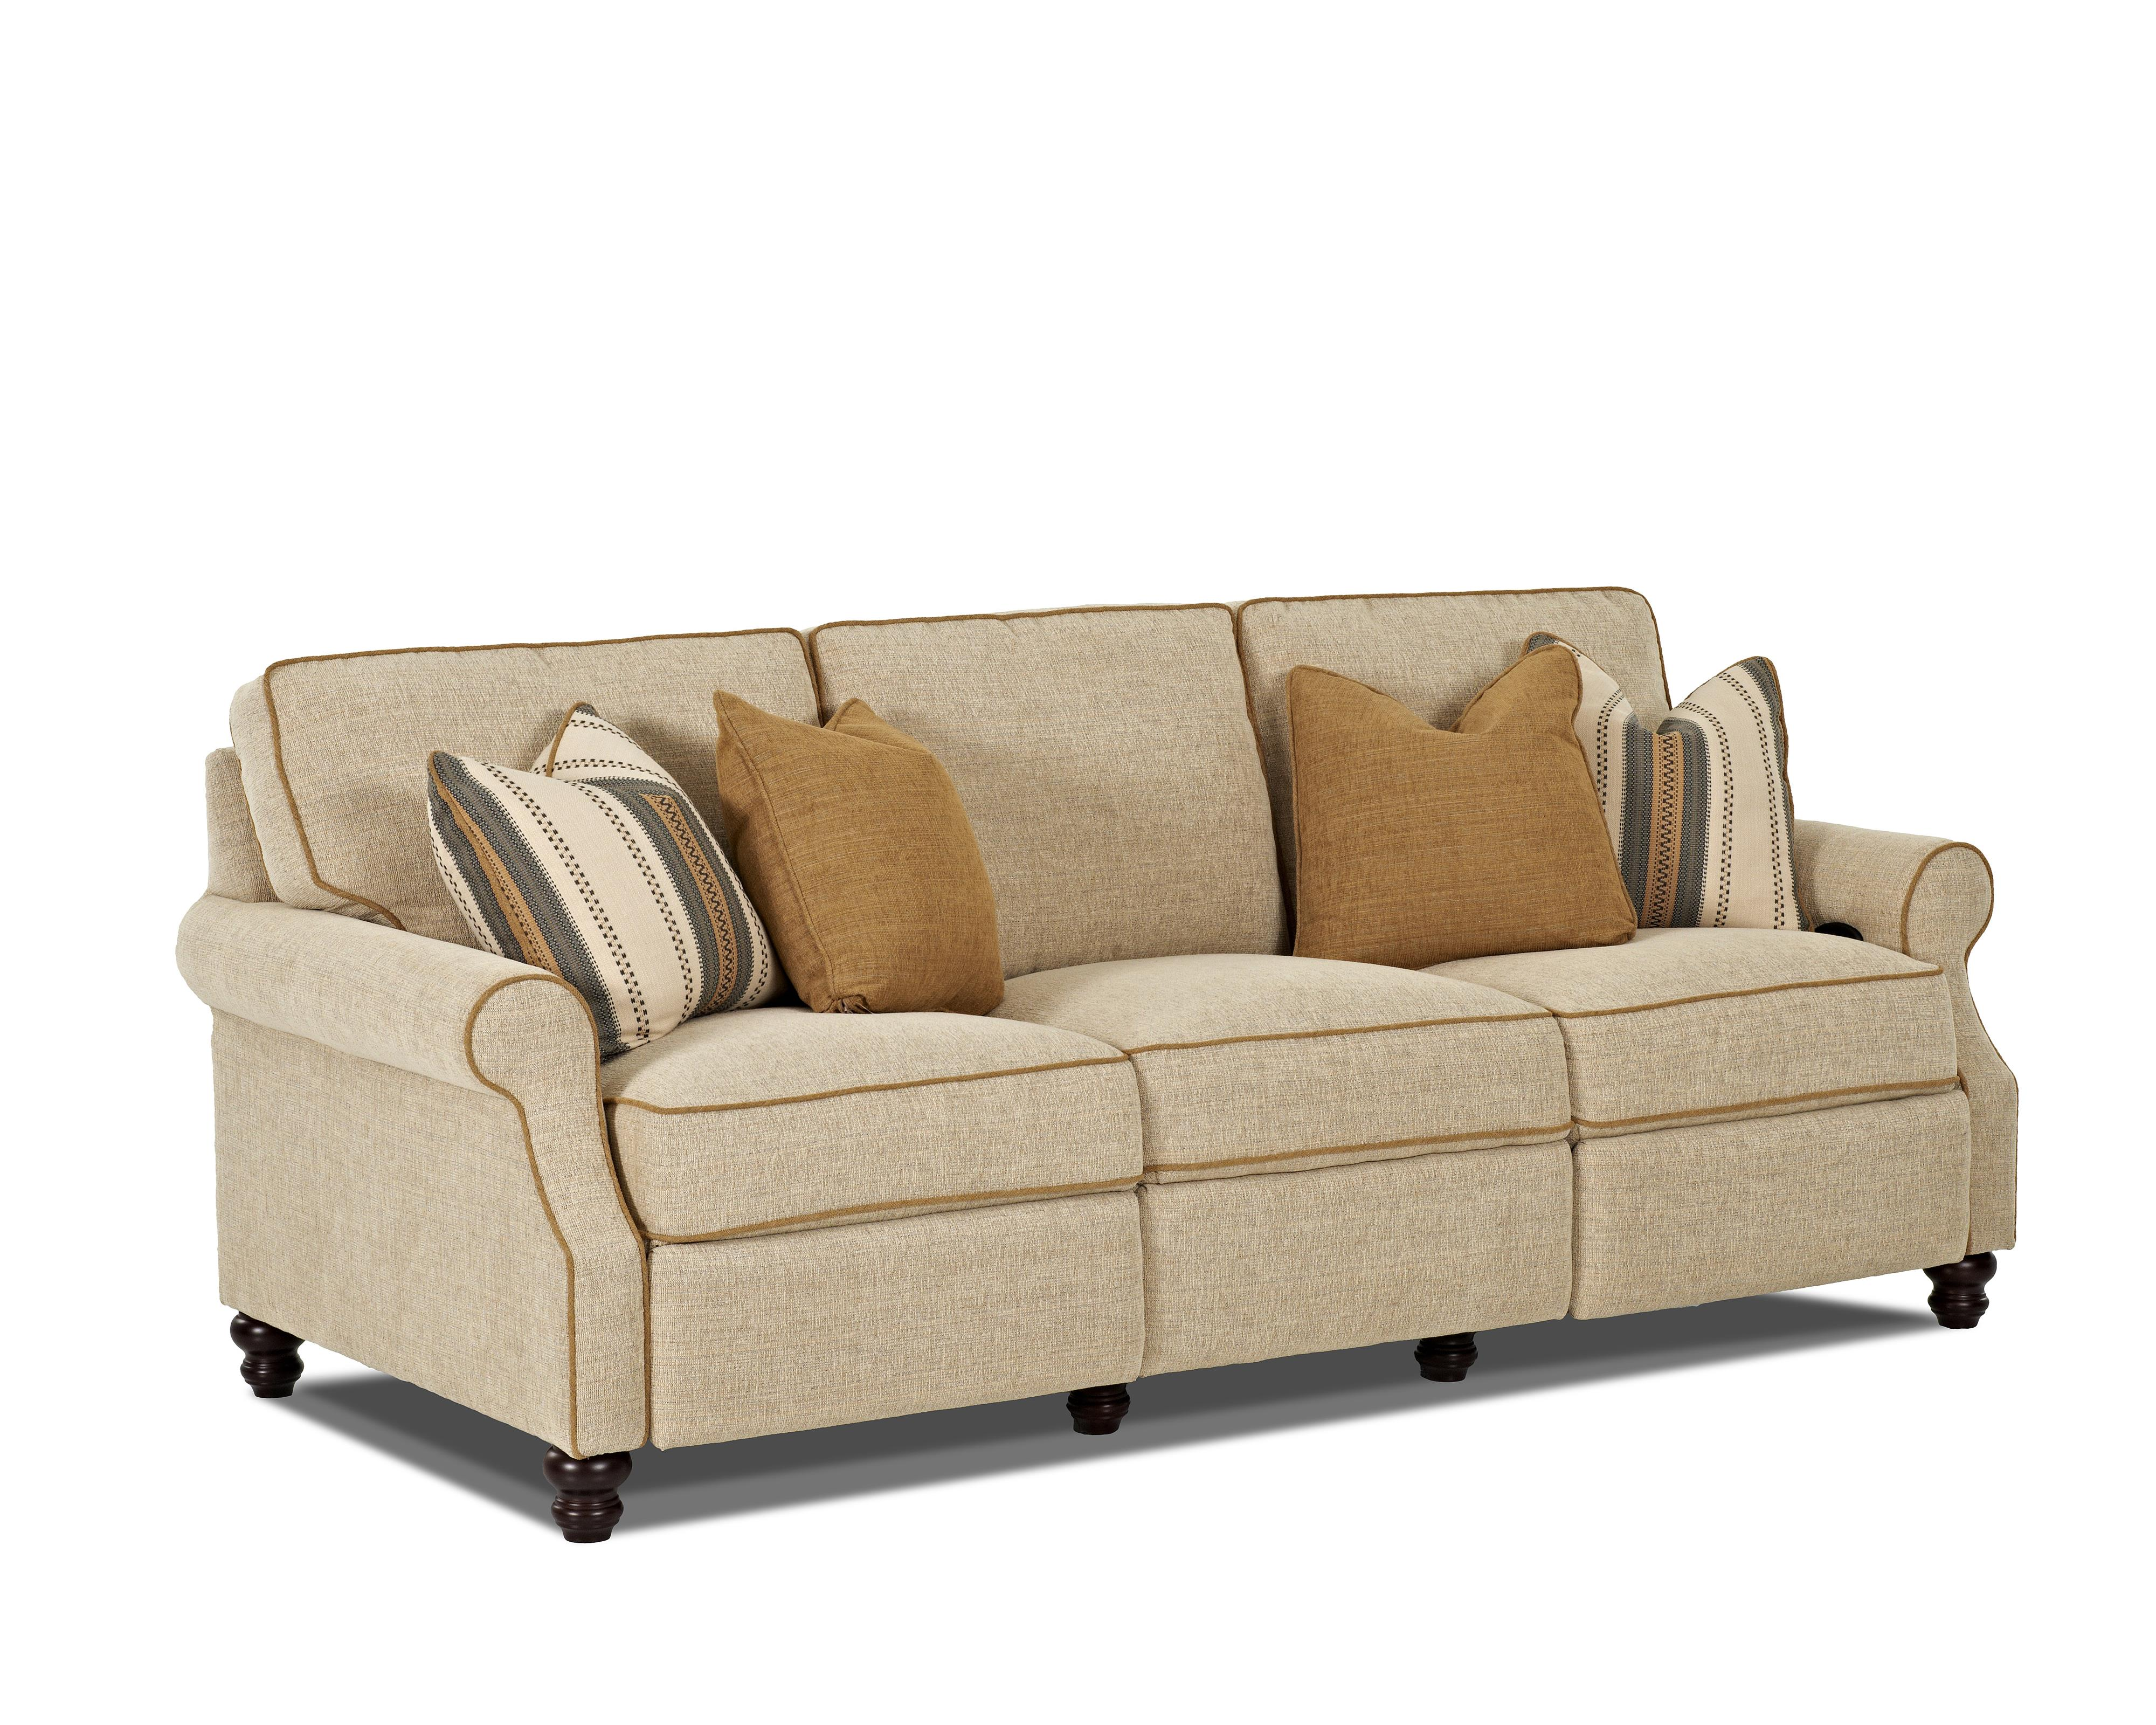 Trisha yearwood home collection by klaussner tifton for Home collection furniture